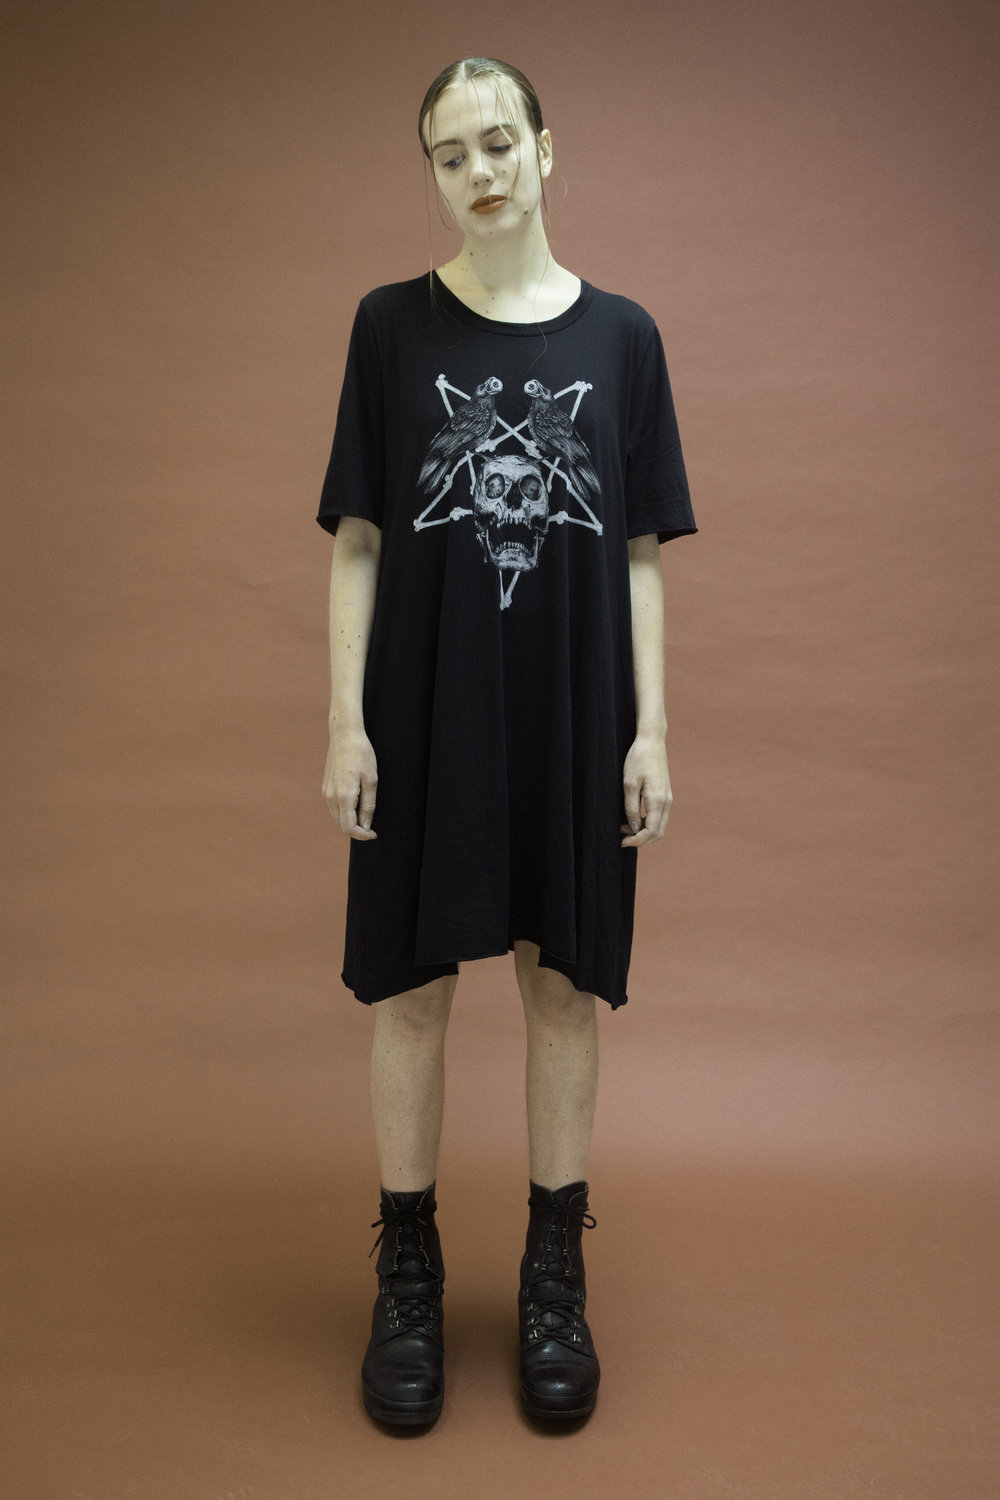 skull-dress-jason-lingard-agoraphobia-collective